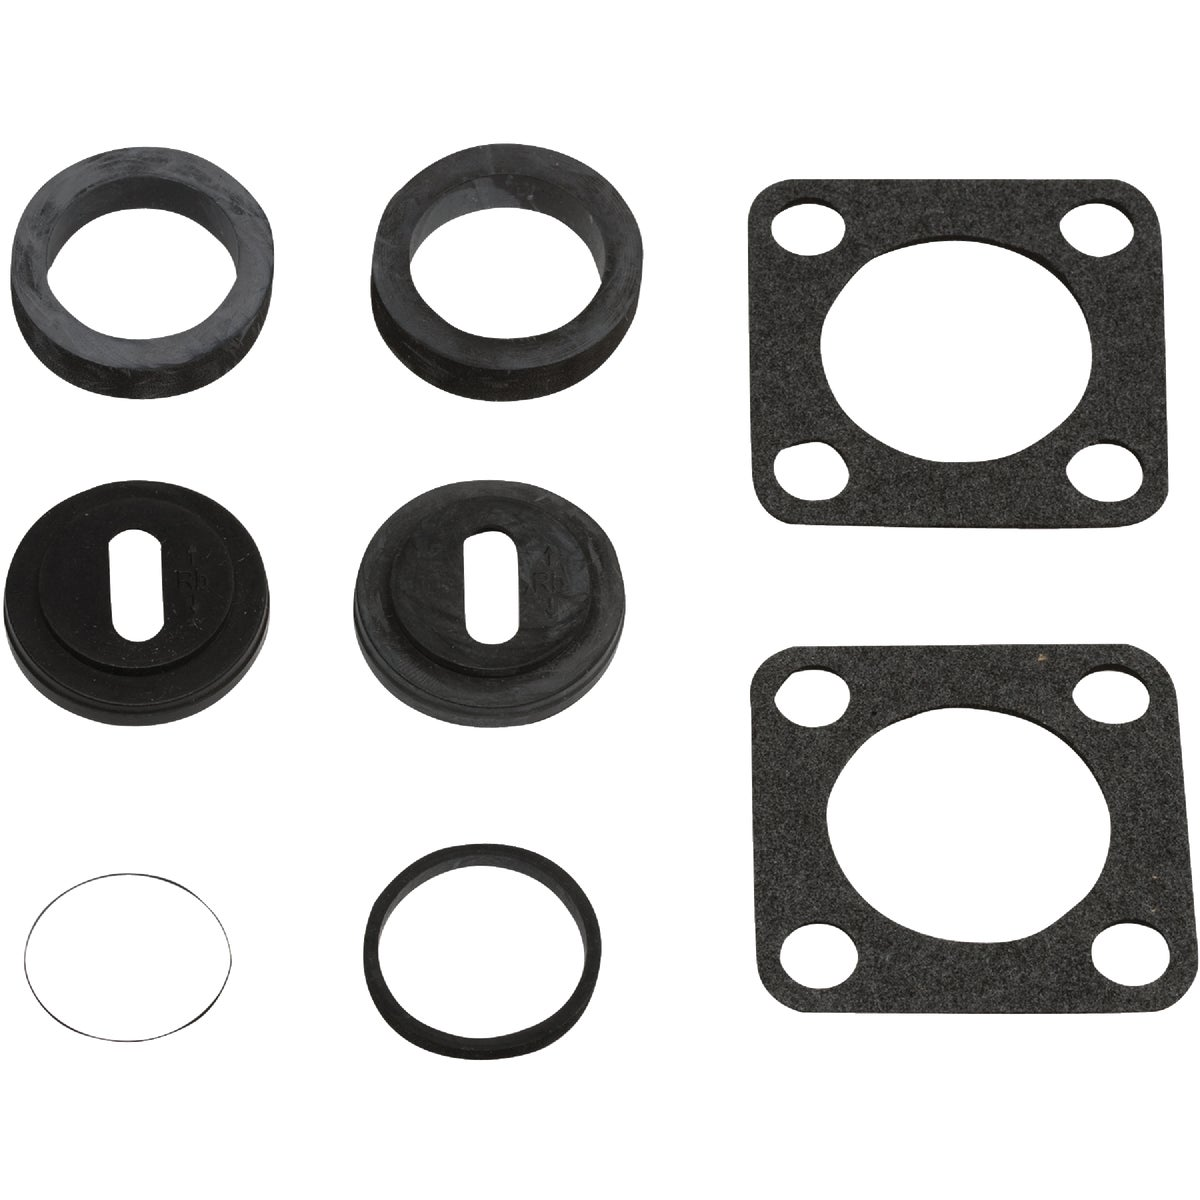 ELEMENT GASKET KIT - 9000443 by Reliance State Ind